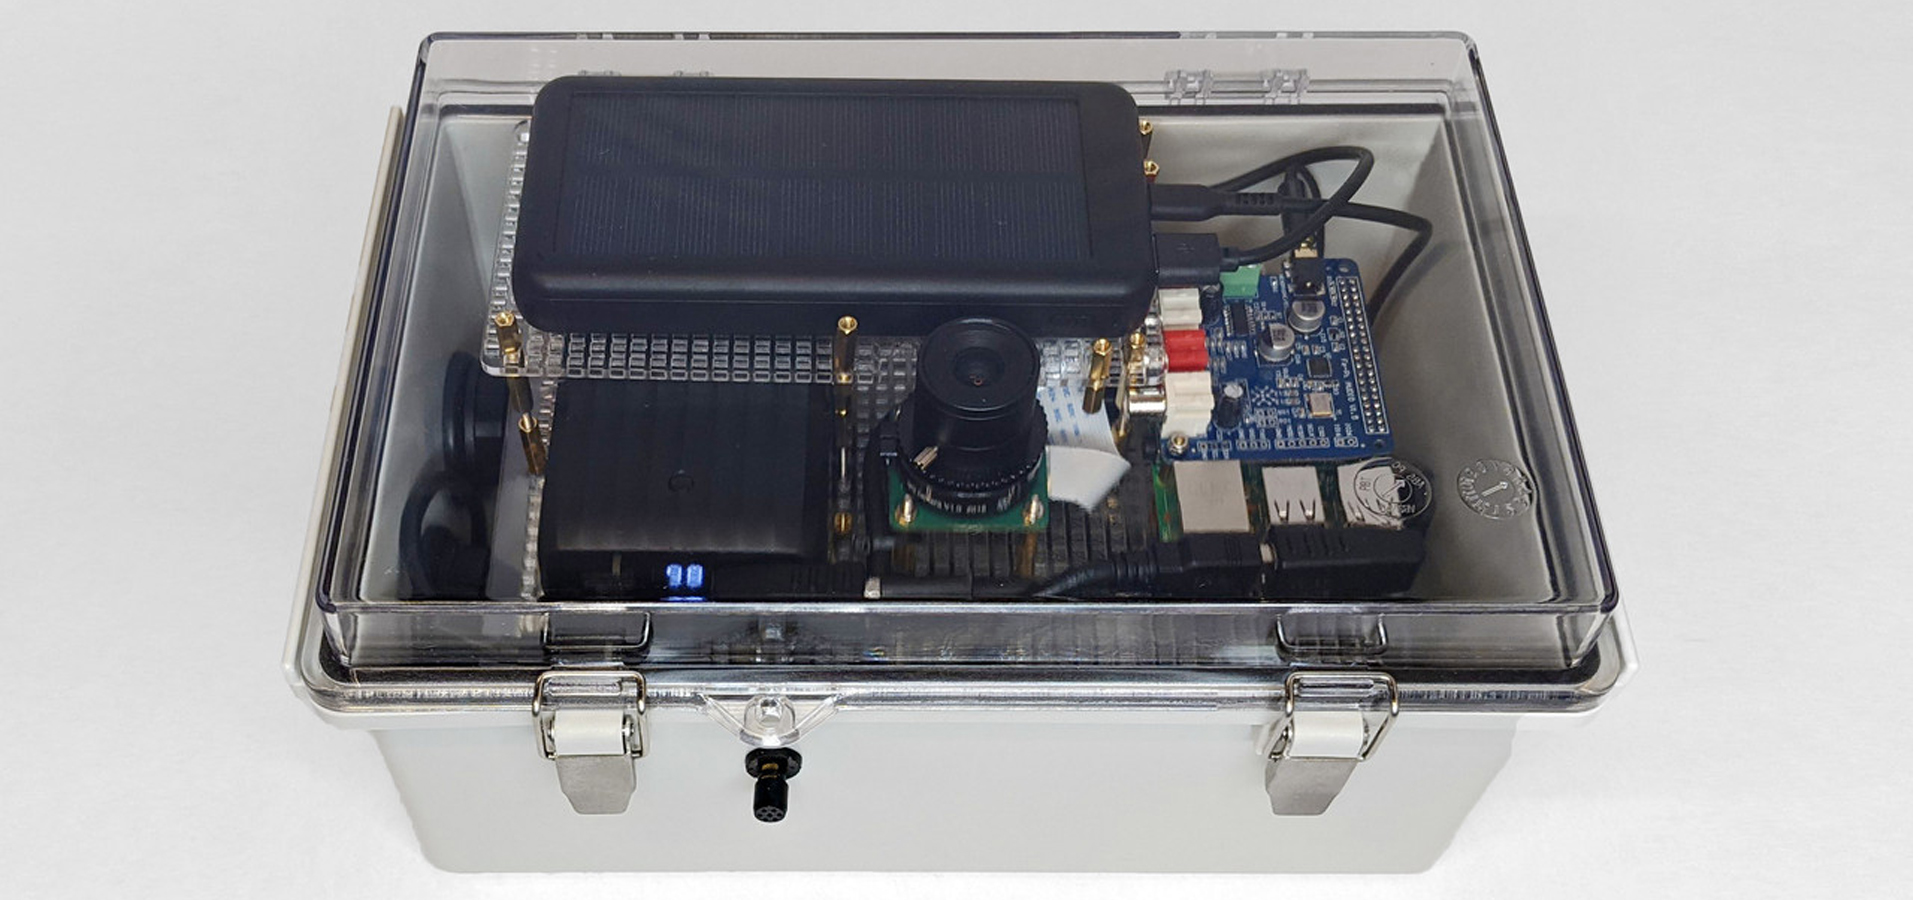 A clear plasic box containing electronics and a solar cell.